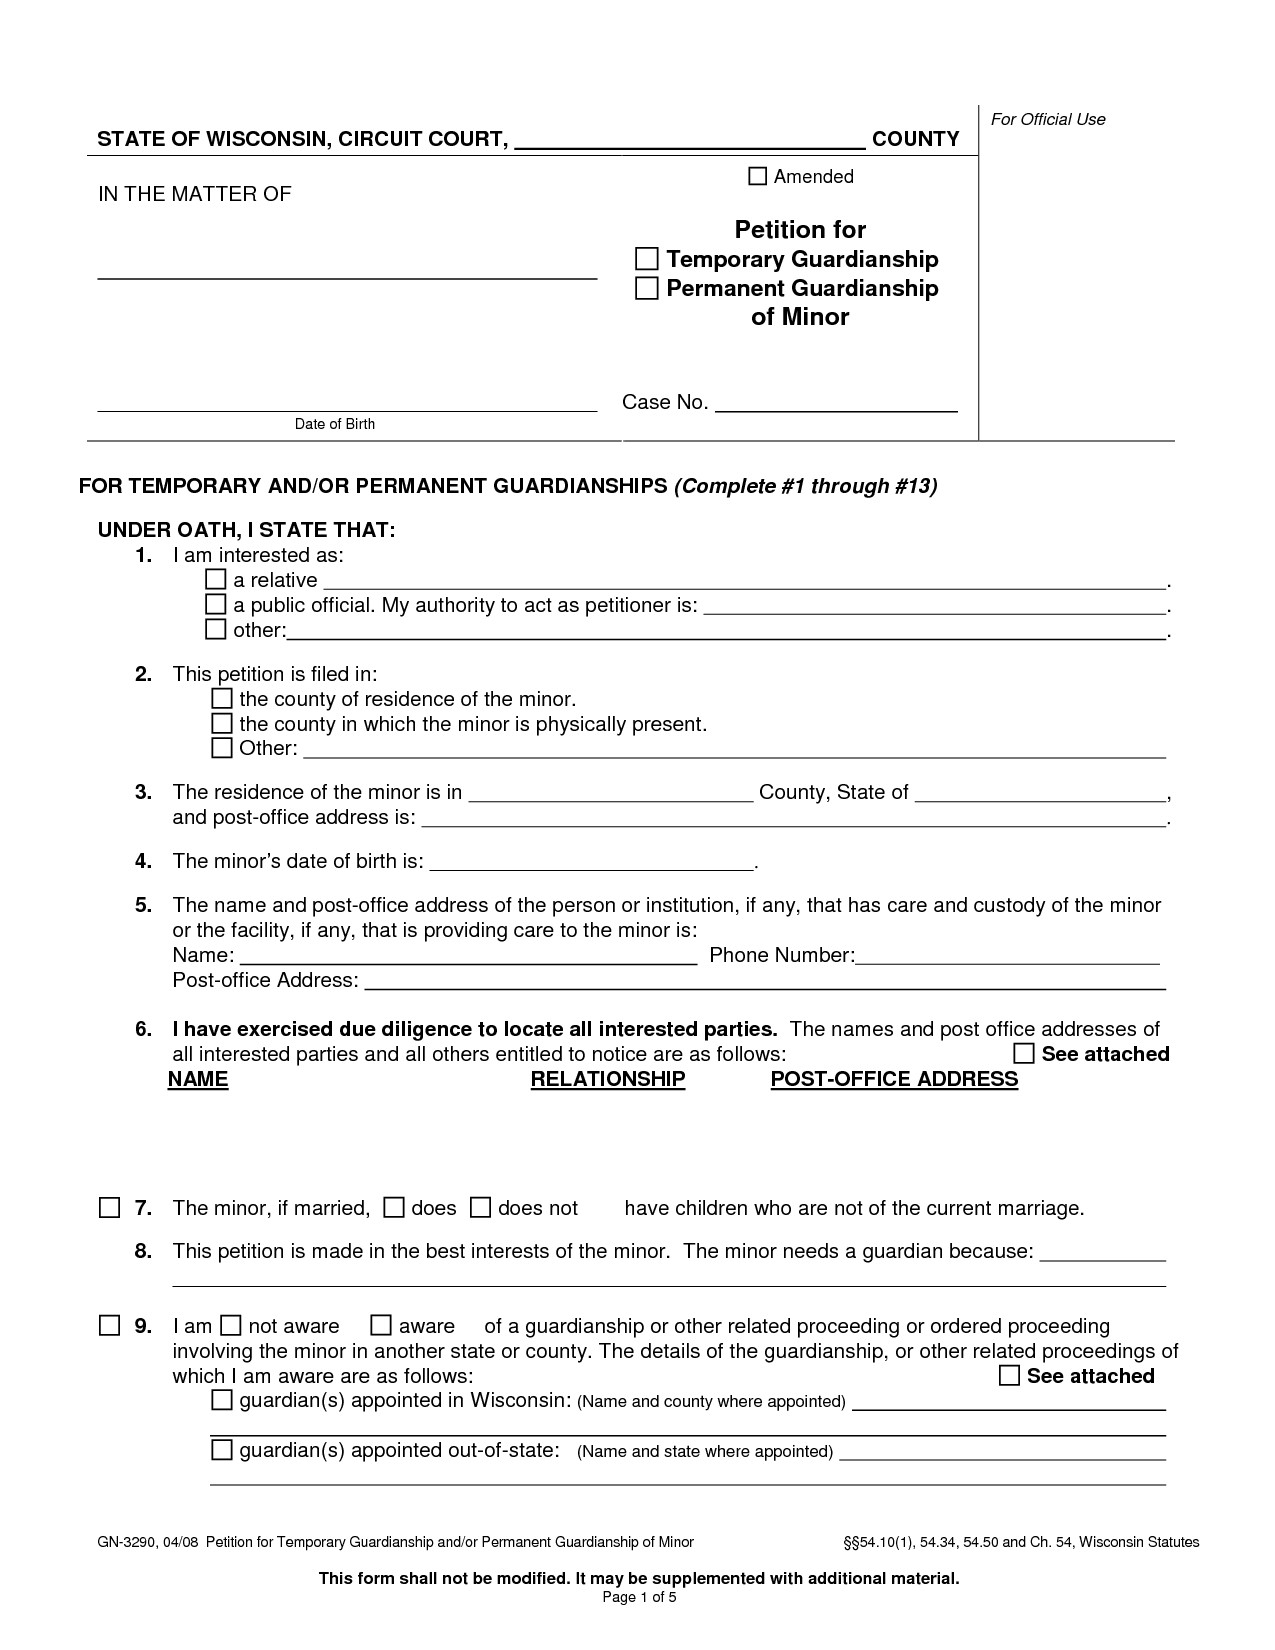 Free Printable Legal Forms Will Forms Free Printable Legal Forms - Free Printable Legal Documents